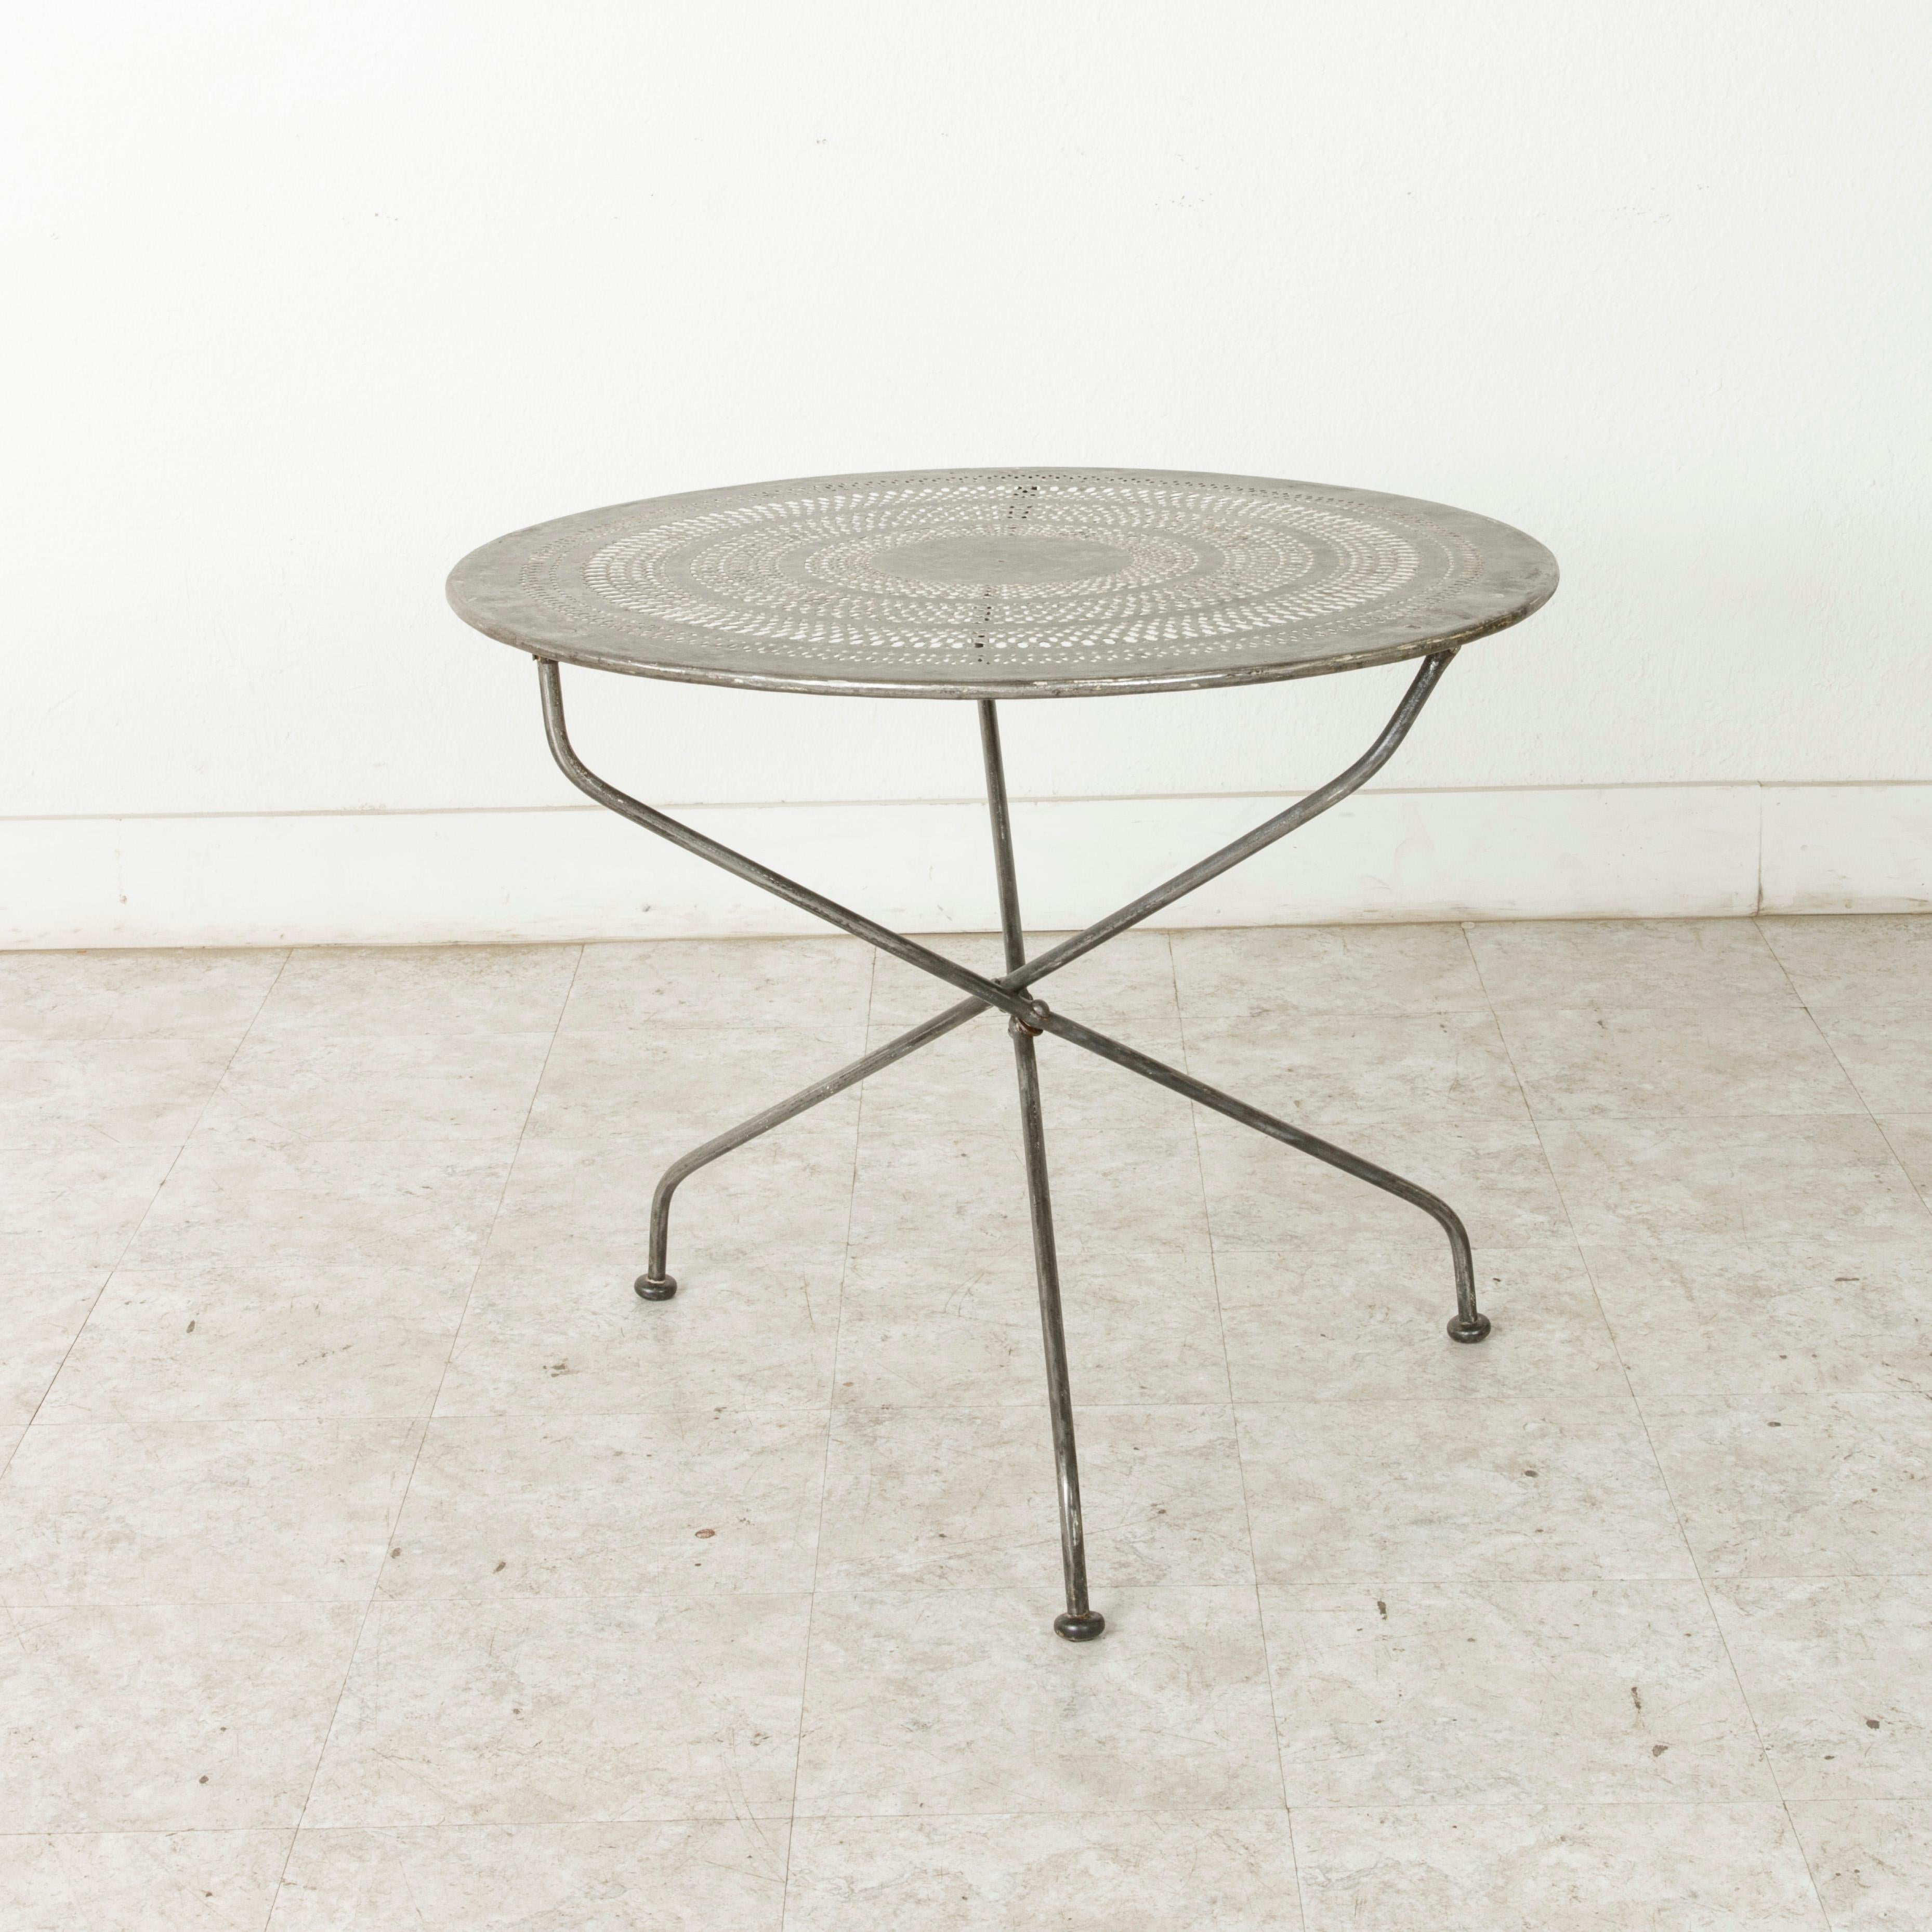 Mid 20th Century French Folding Pierced Metal Outdoor Garden Table, Cafe  Table